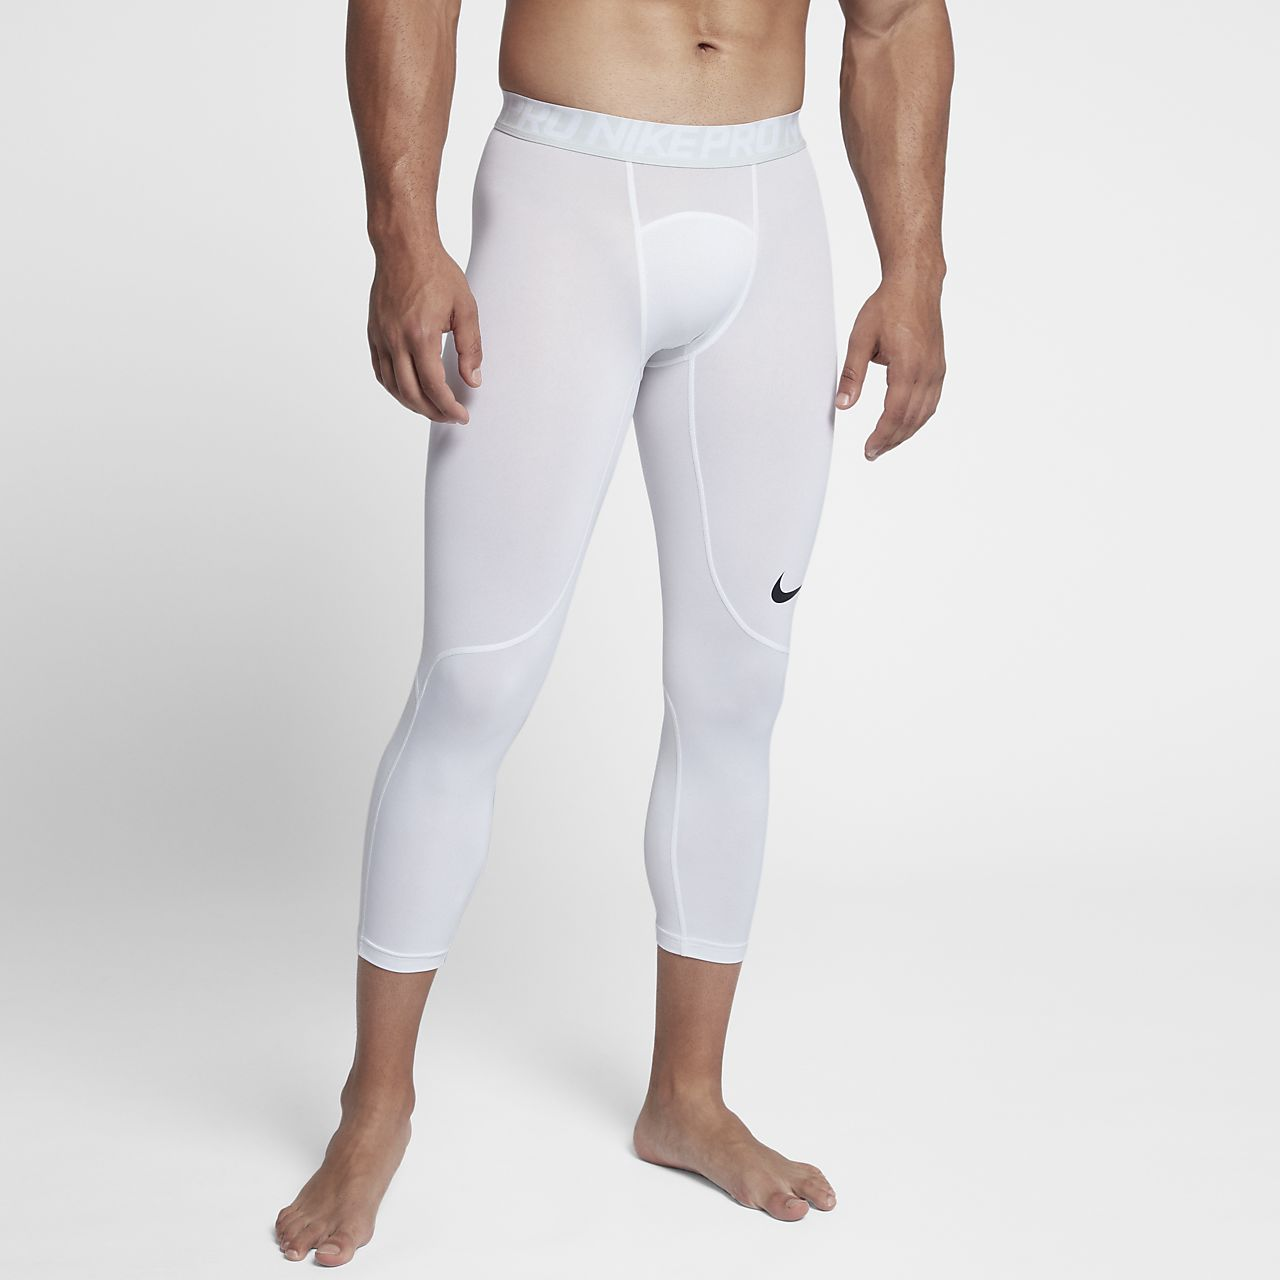 b0b39ce4f2caa Nike Pro Men's 3/4 Training Tights. Nike.com